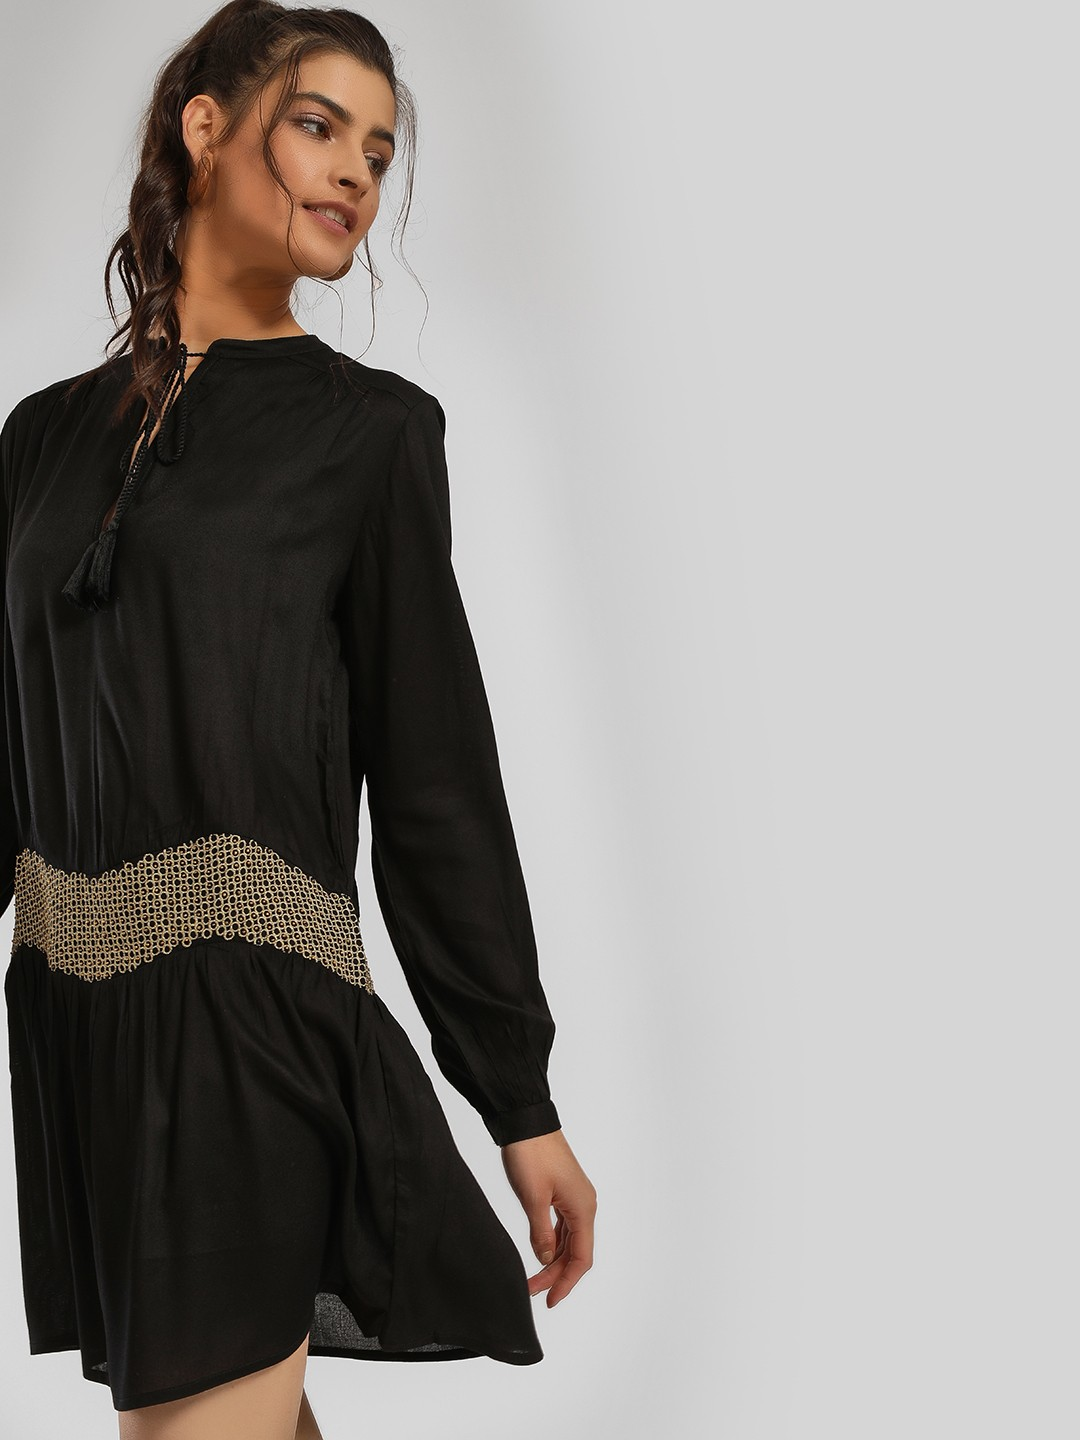 MIWAY Black Embroidered & Bead Embellished Shift Dress 1